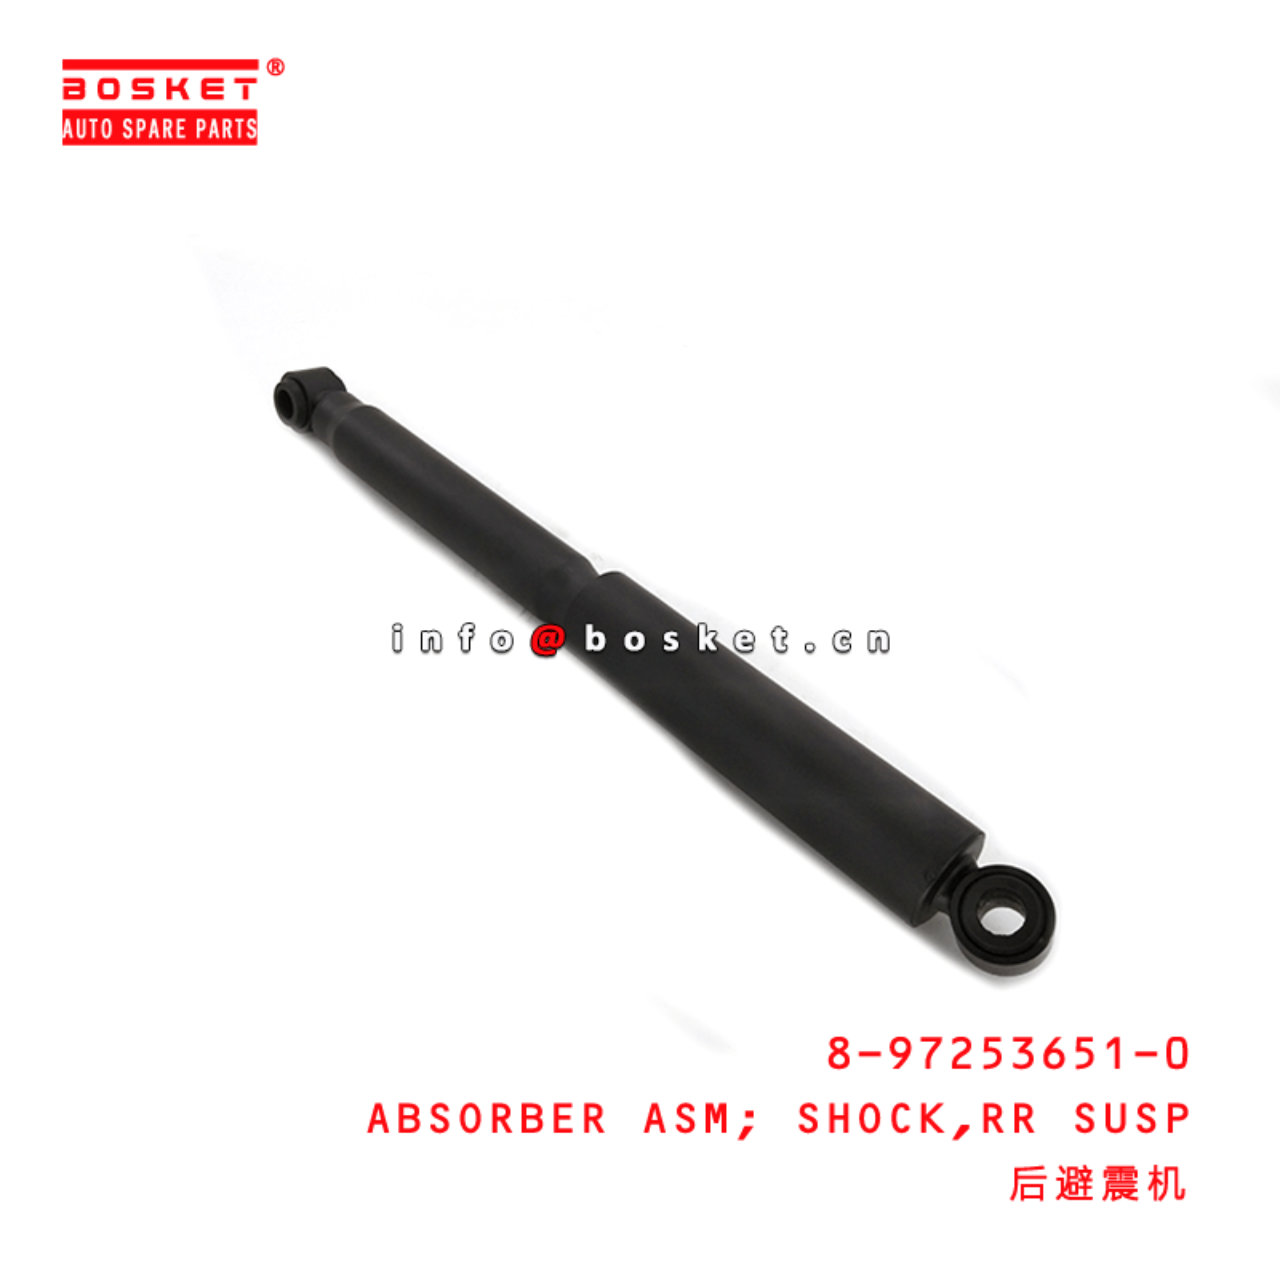 8-97253651-0 Rear Suspension Shock Absorber Assembly 8972536510 Suitable for ISUZU 600P NQR71 NPR66